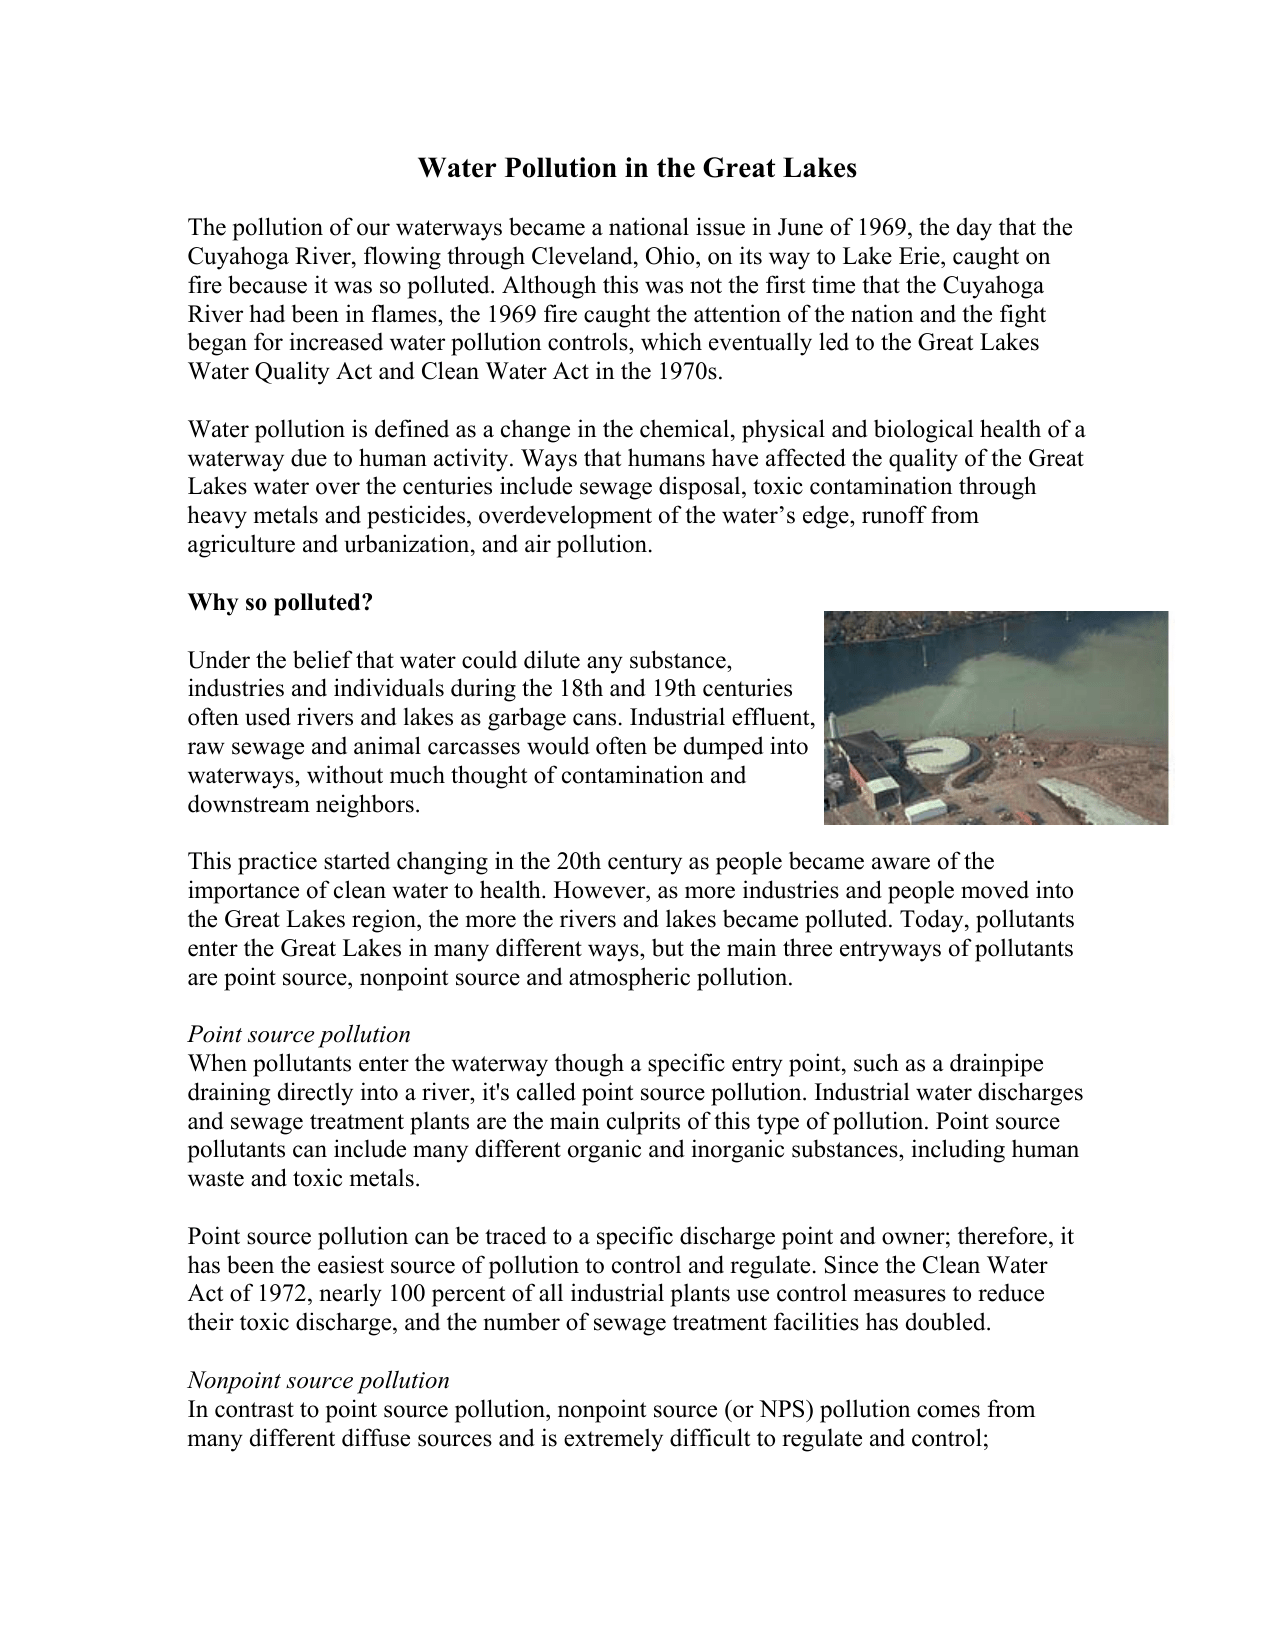 Point Source Pollution Definition